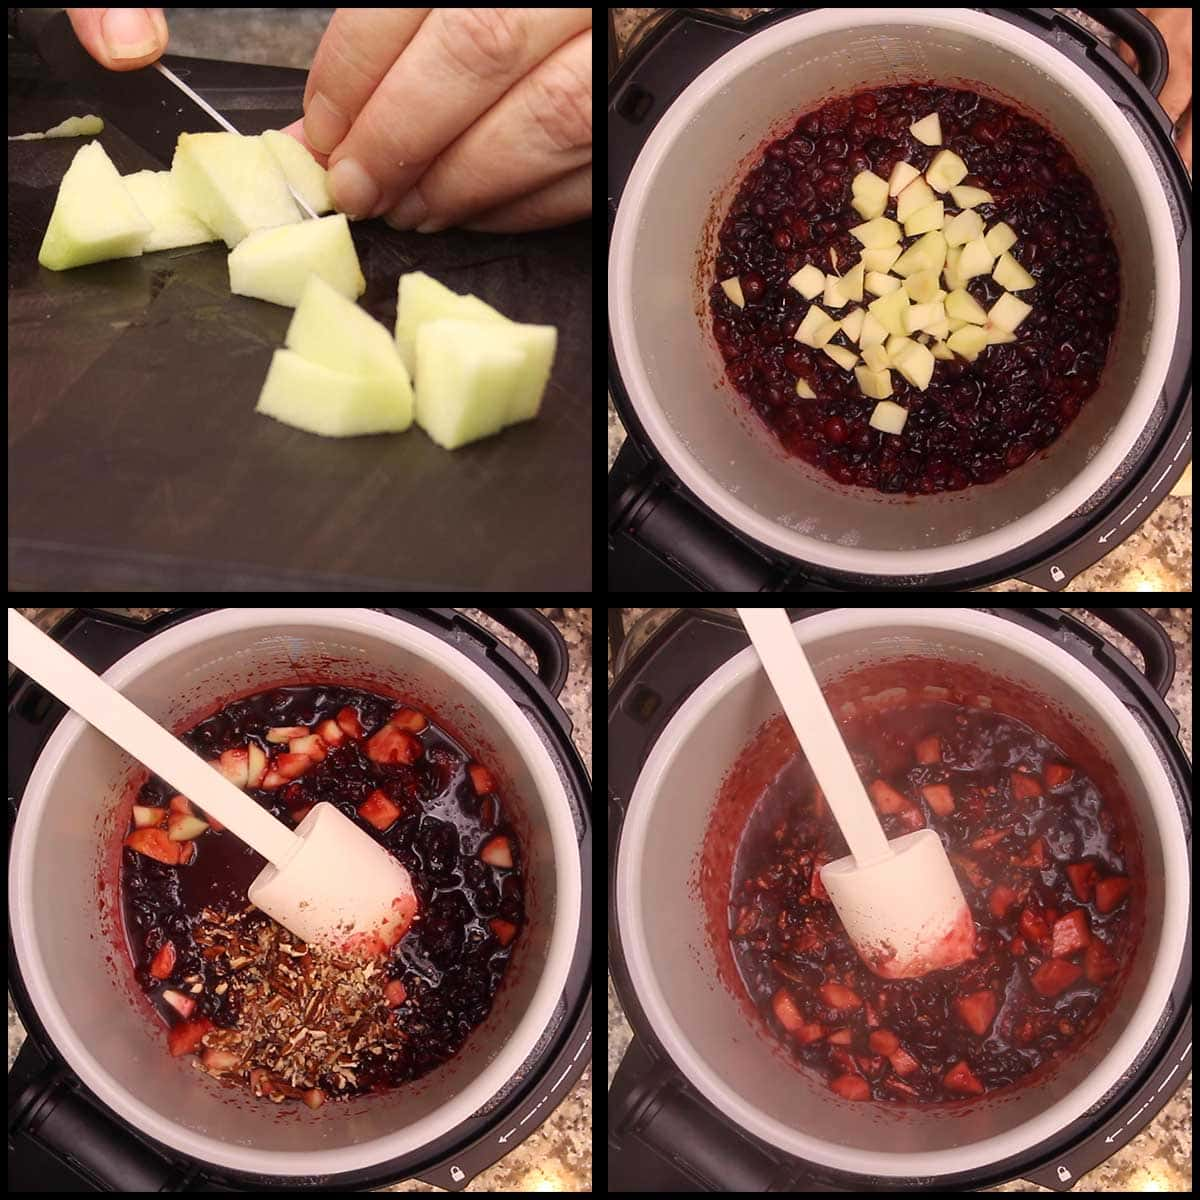 folding in apples and pecans after pressure cooking